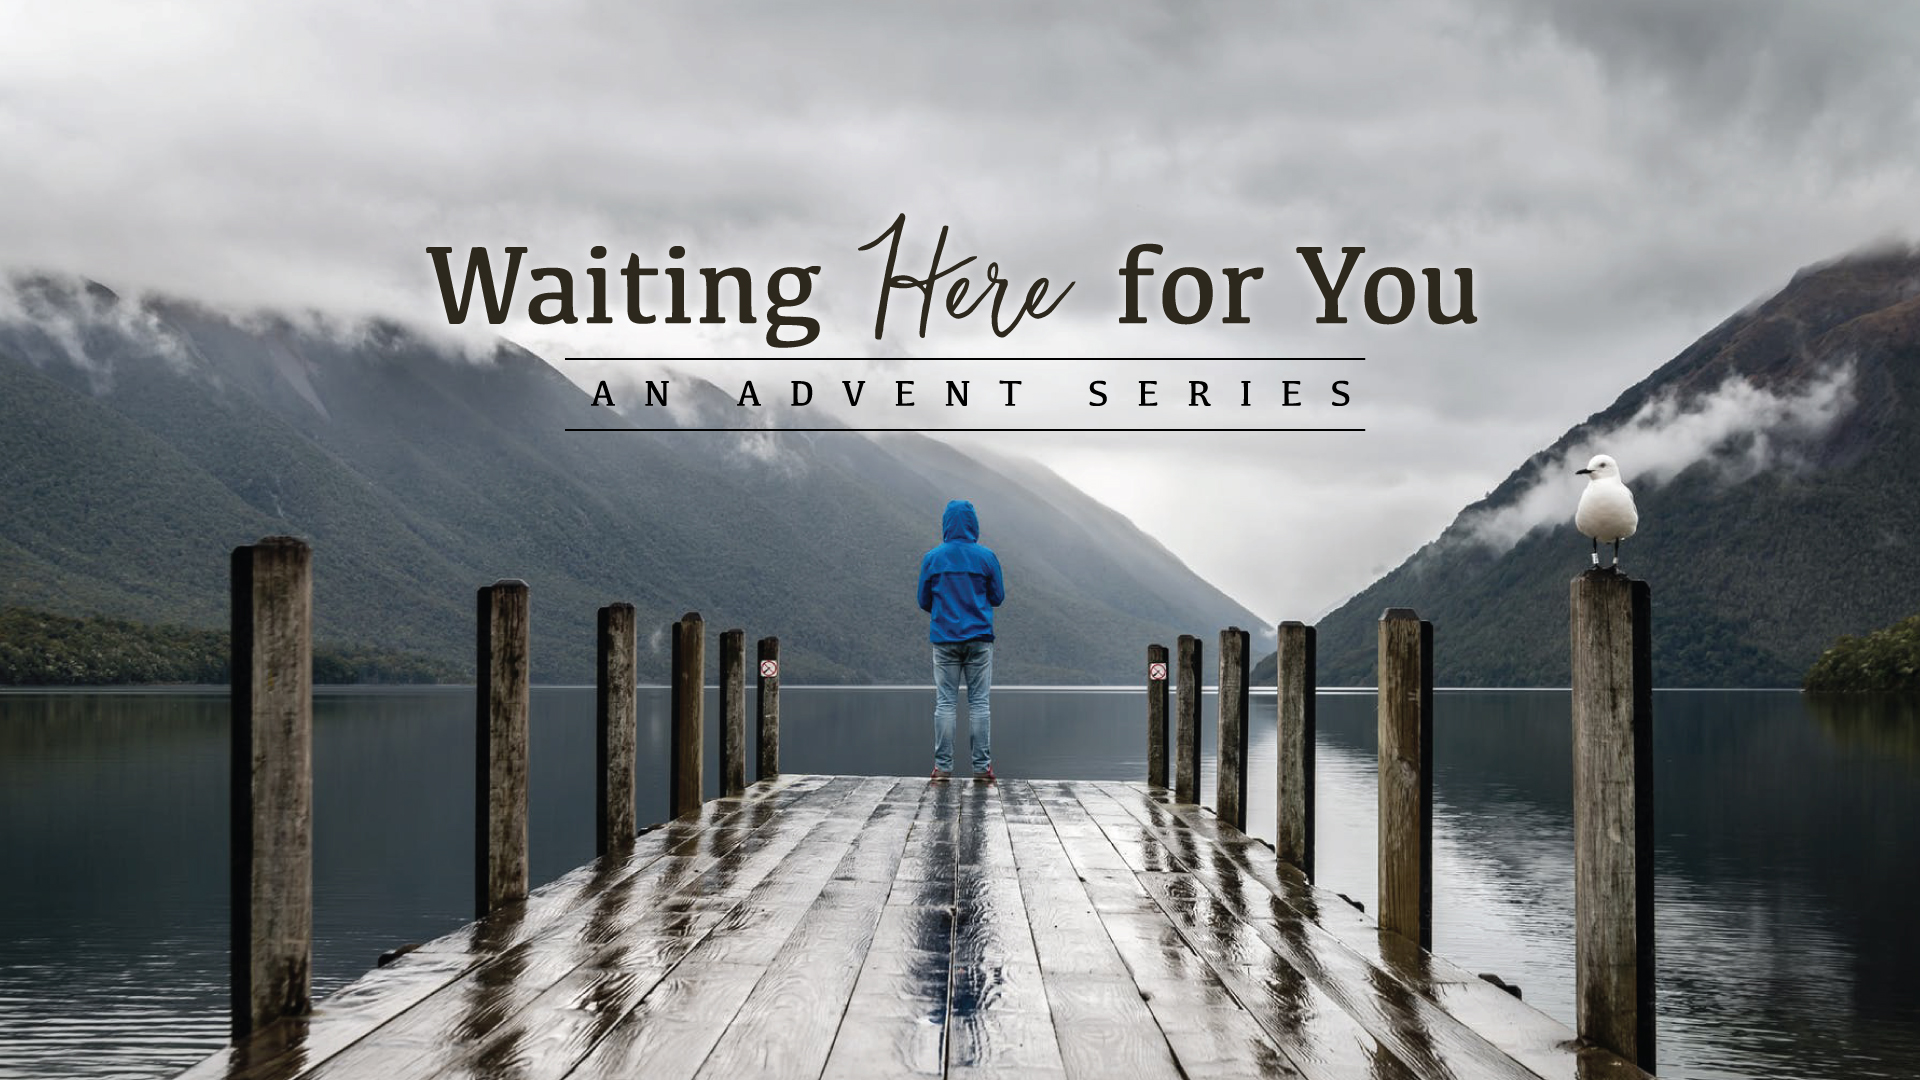 Waiting Here for Hope